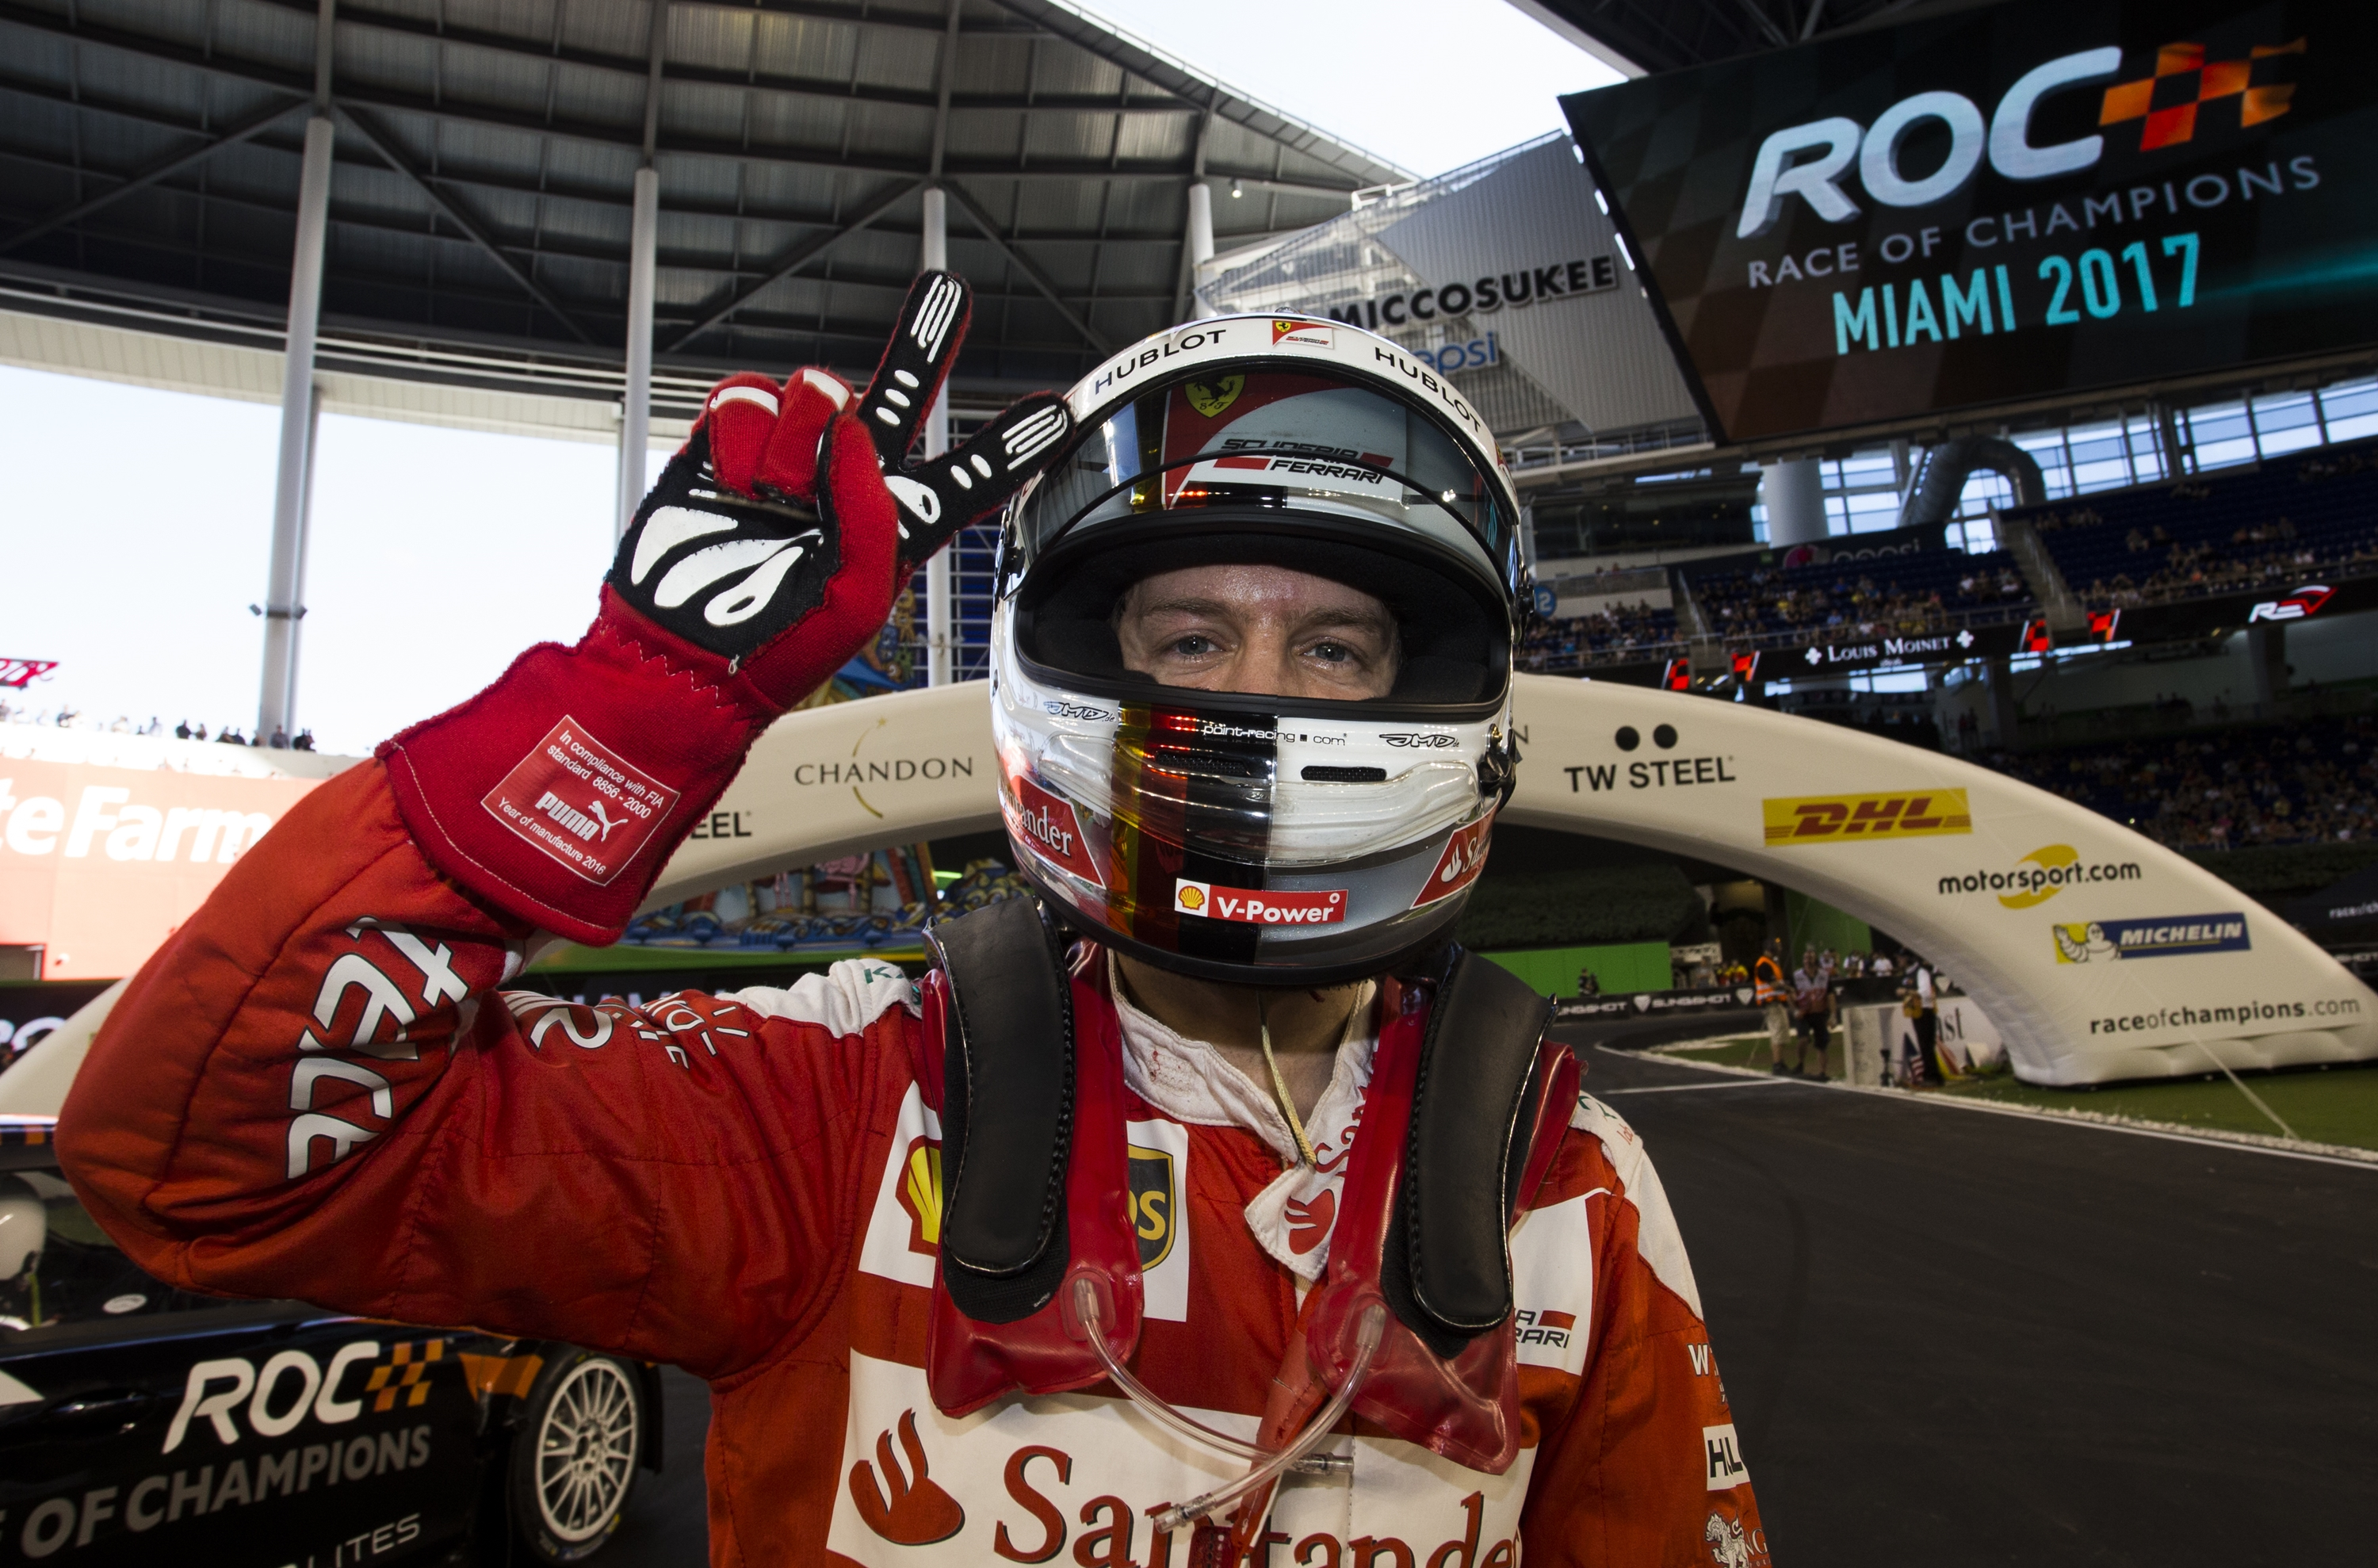 sebastian_vettel_ger_celebrates_his_win_for_team_germany_during_the_roc_nations_cup_on_sunday_22_january_2017_at_marlins_park_miami_florida_usa_860.JPG